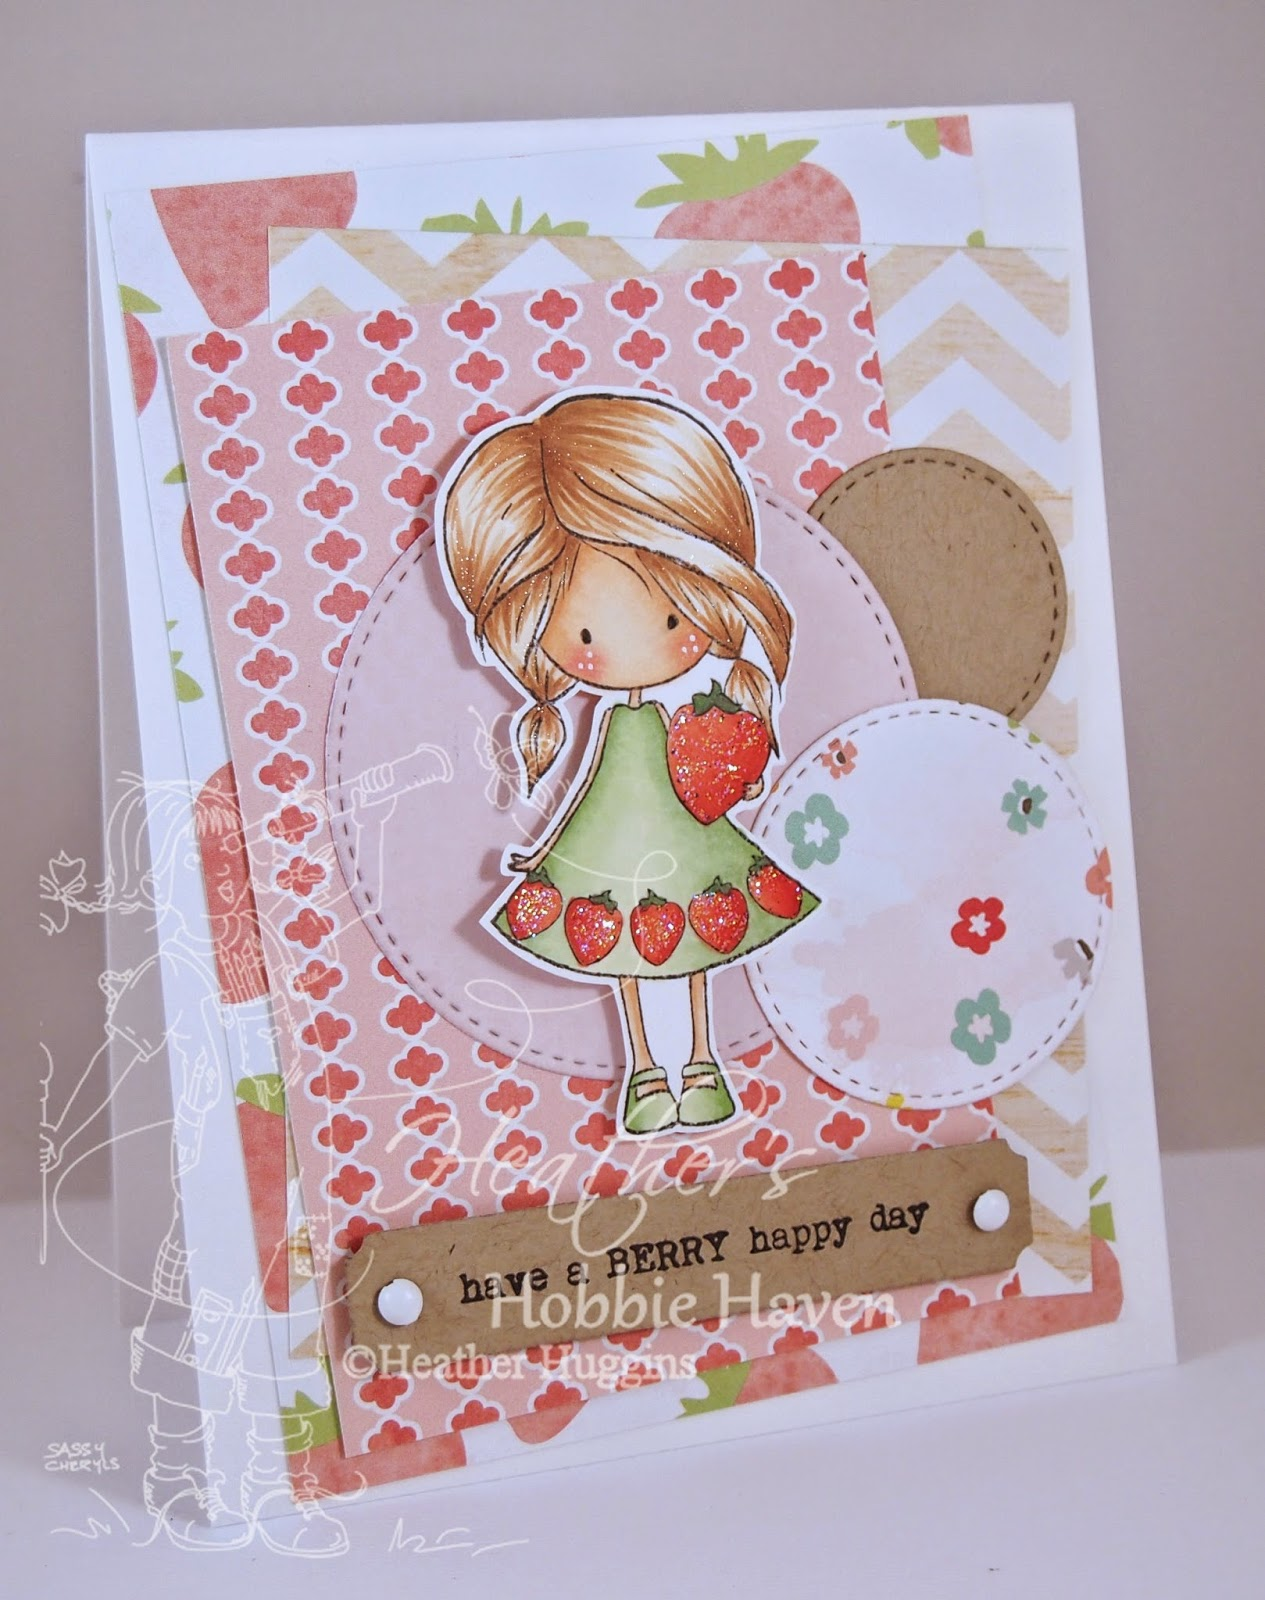 Heather's Hobbie Haven - Flynn's Berry Happy Day Card Kit